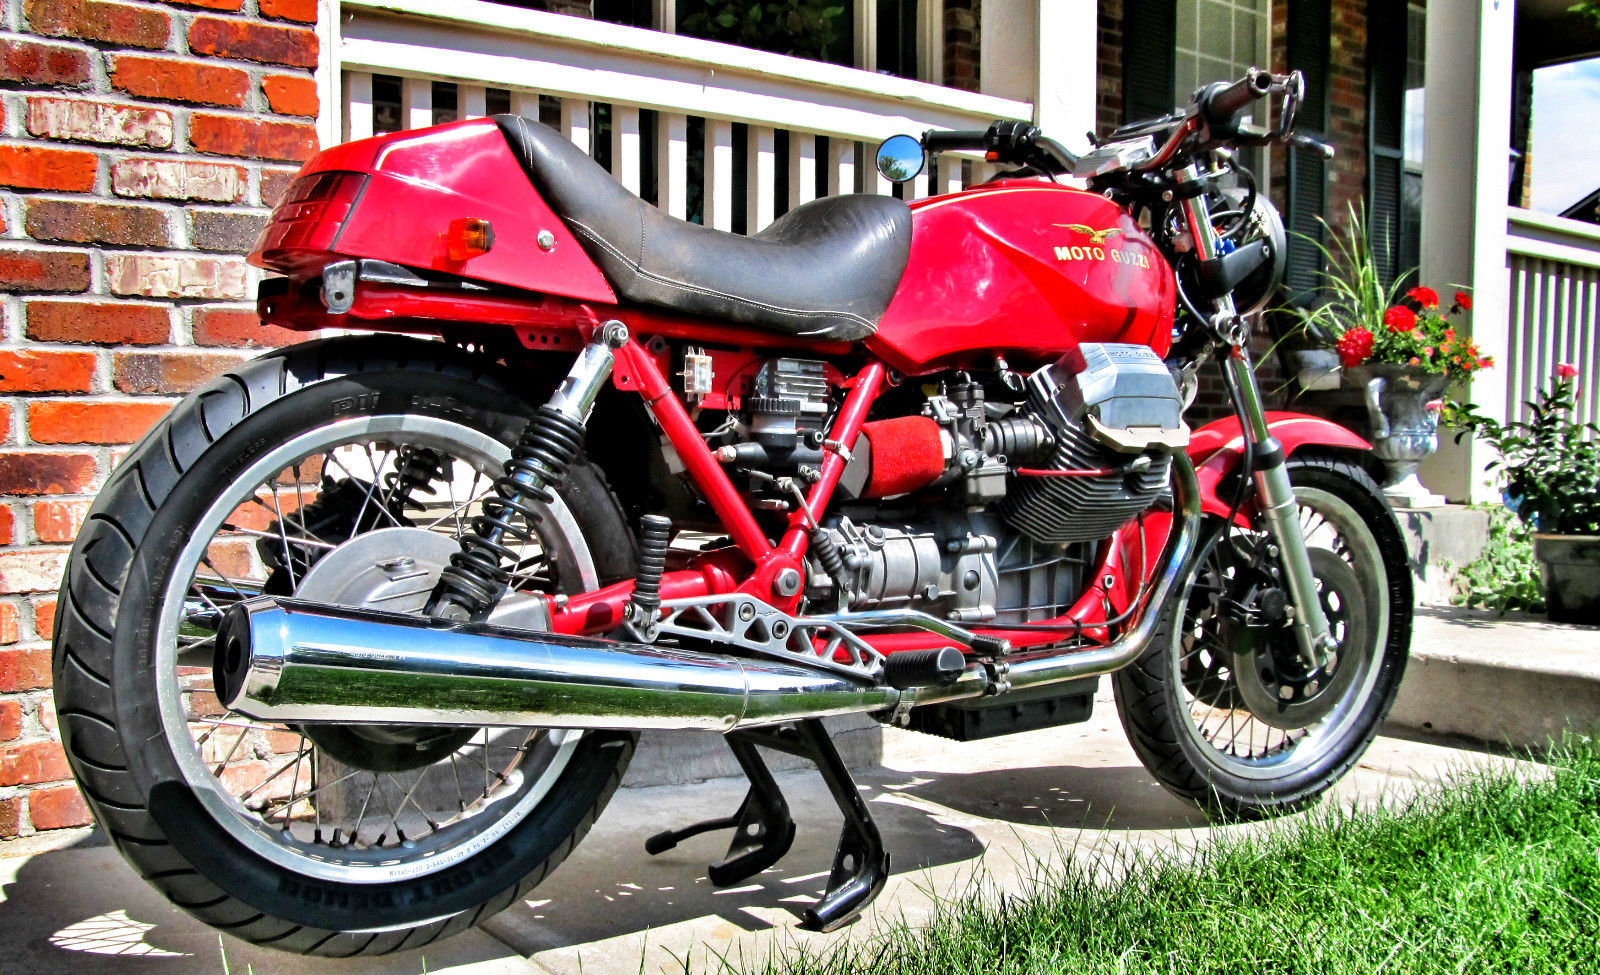 butterface 1990 moto guzzi mille gt 1000 custom bike. Black Bedroom Furniture Sets. Home Design Ideas